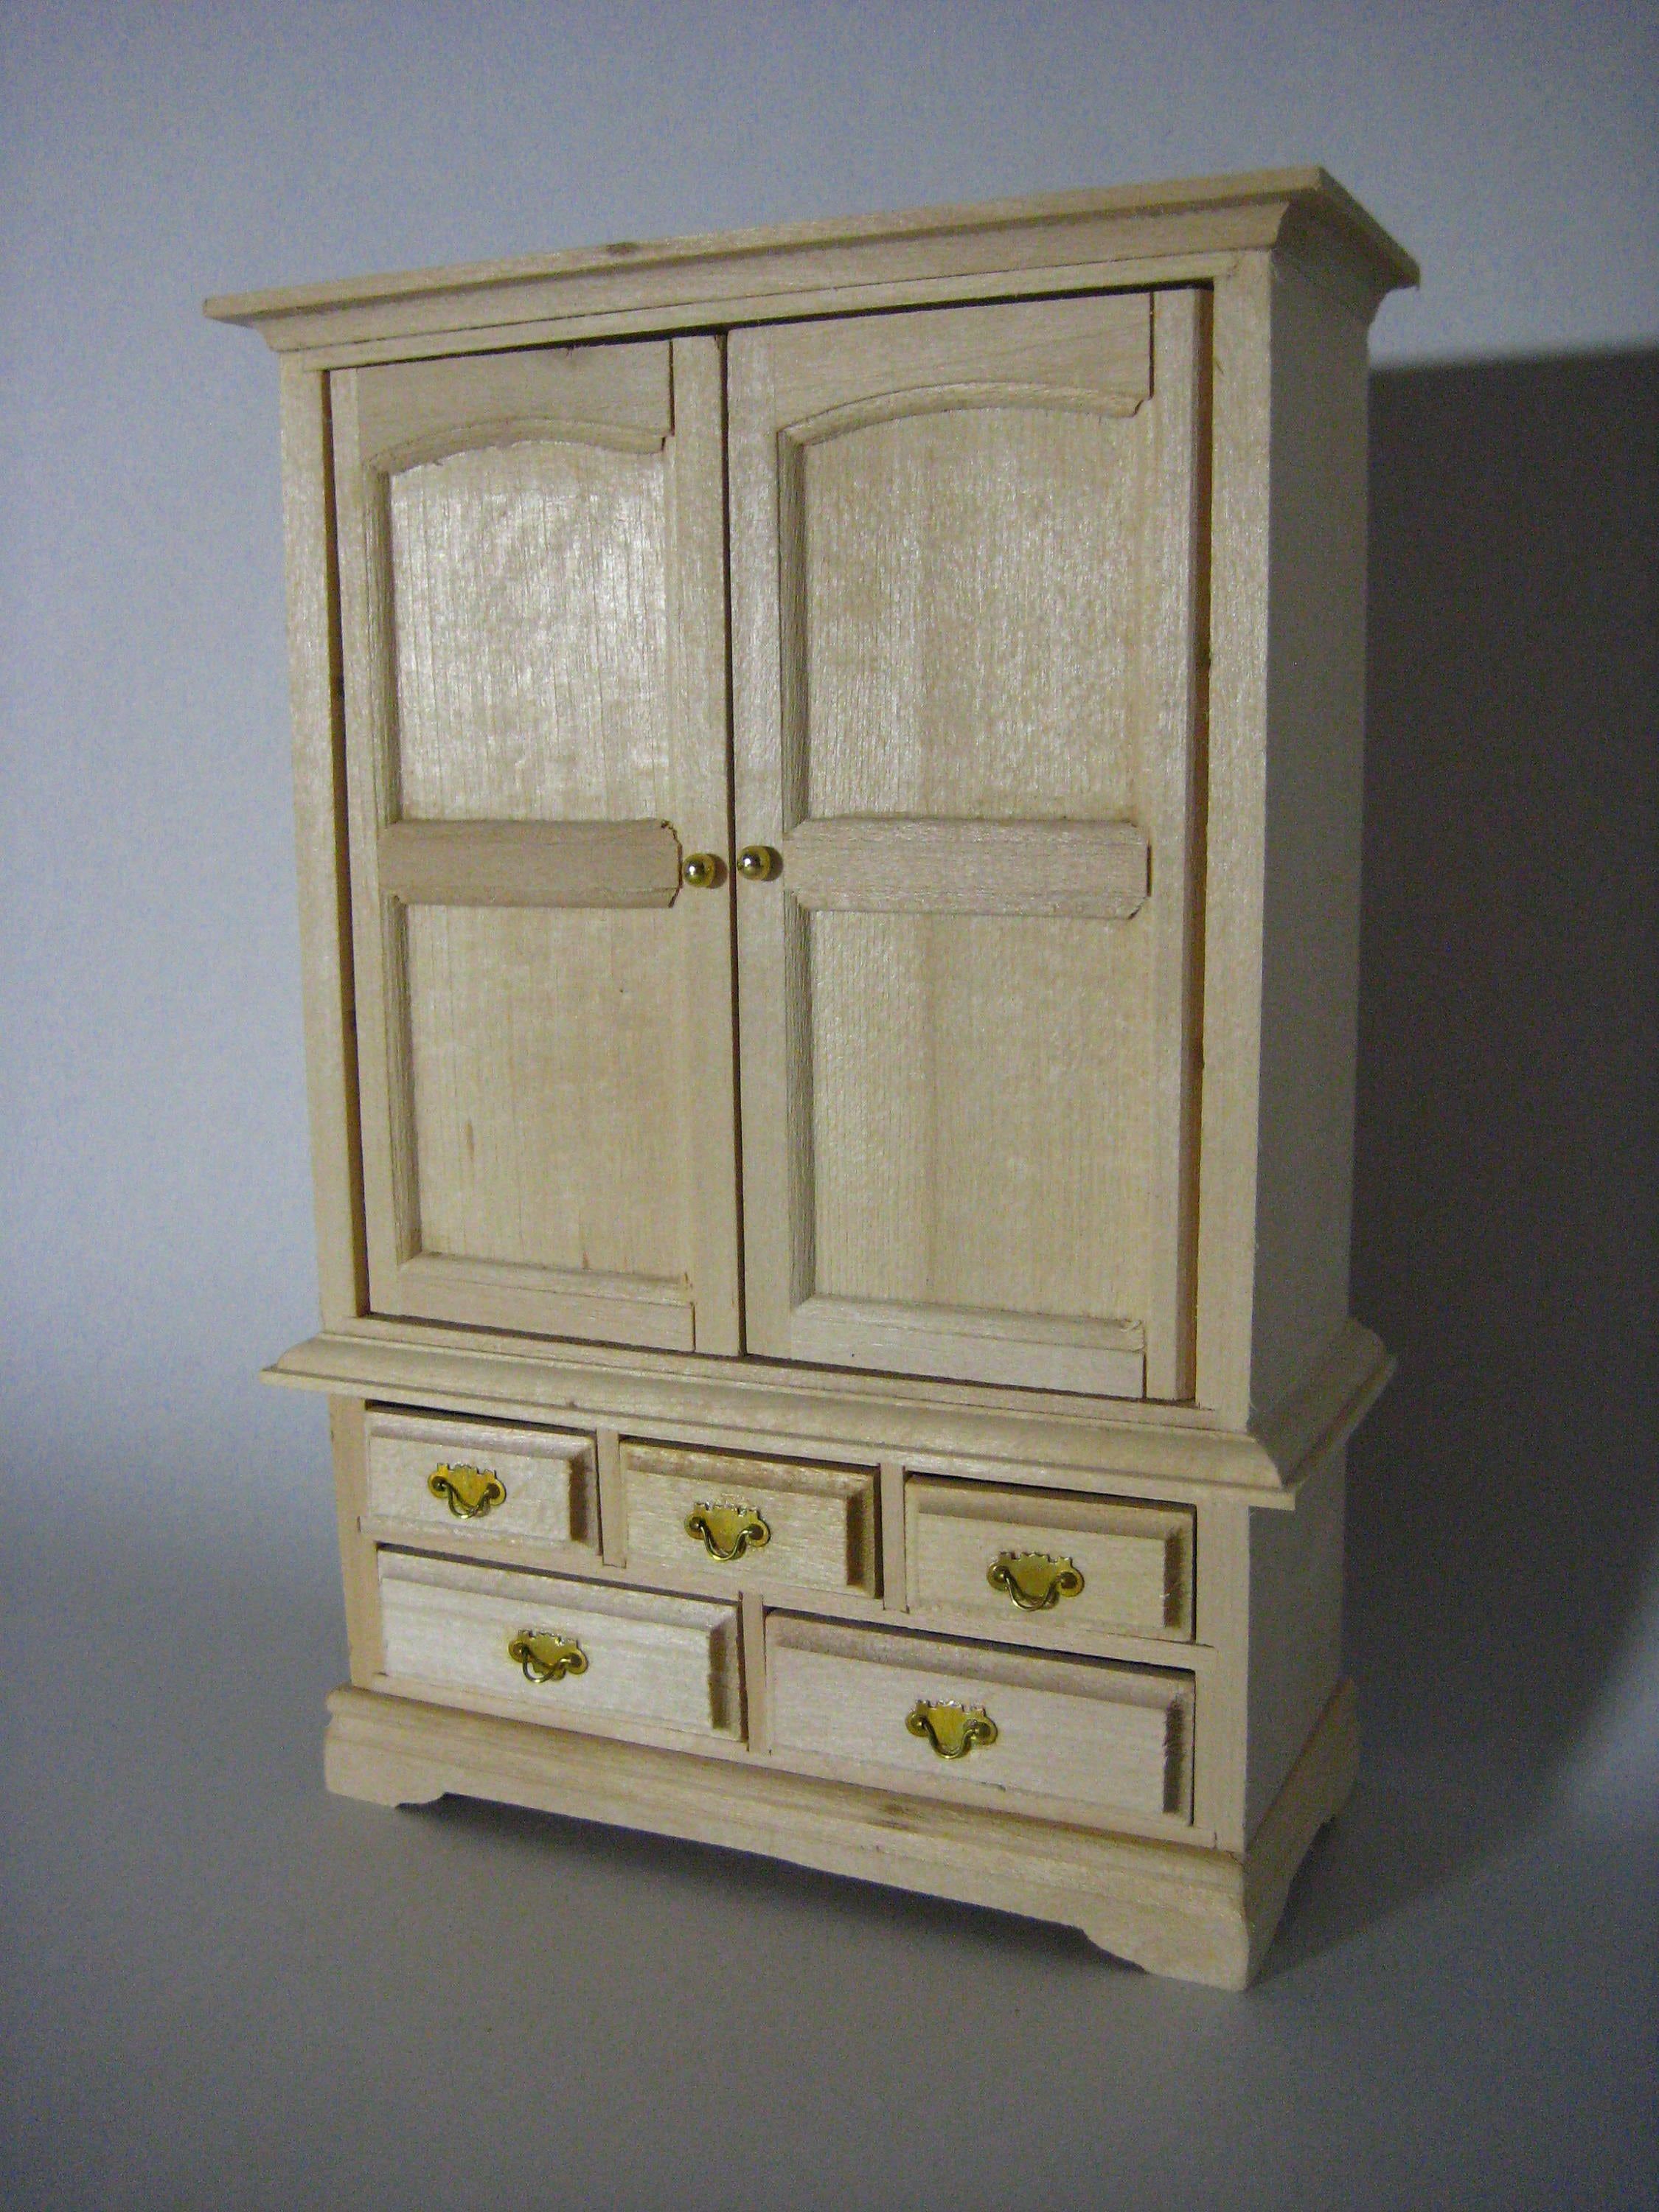 unfinished dollhouse furniture. Description. Unfinished Wood Miniature Cabinet Dollhouse Furniture N